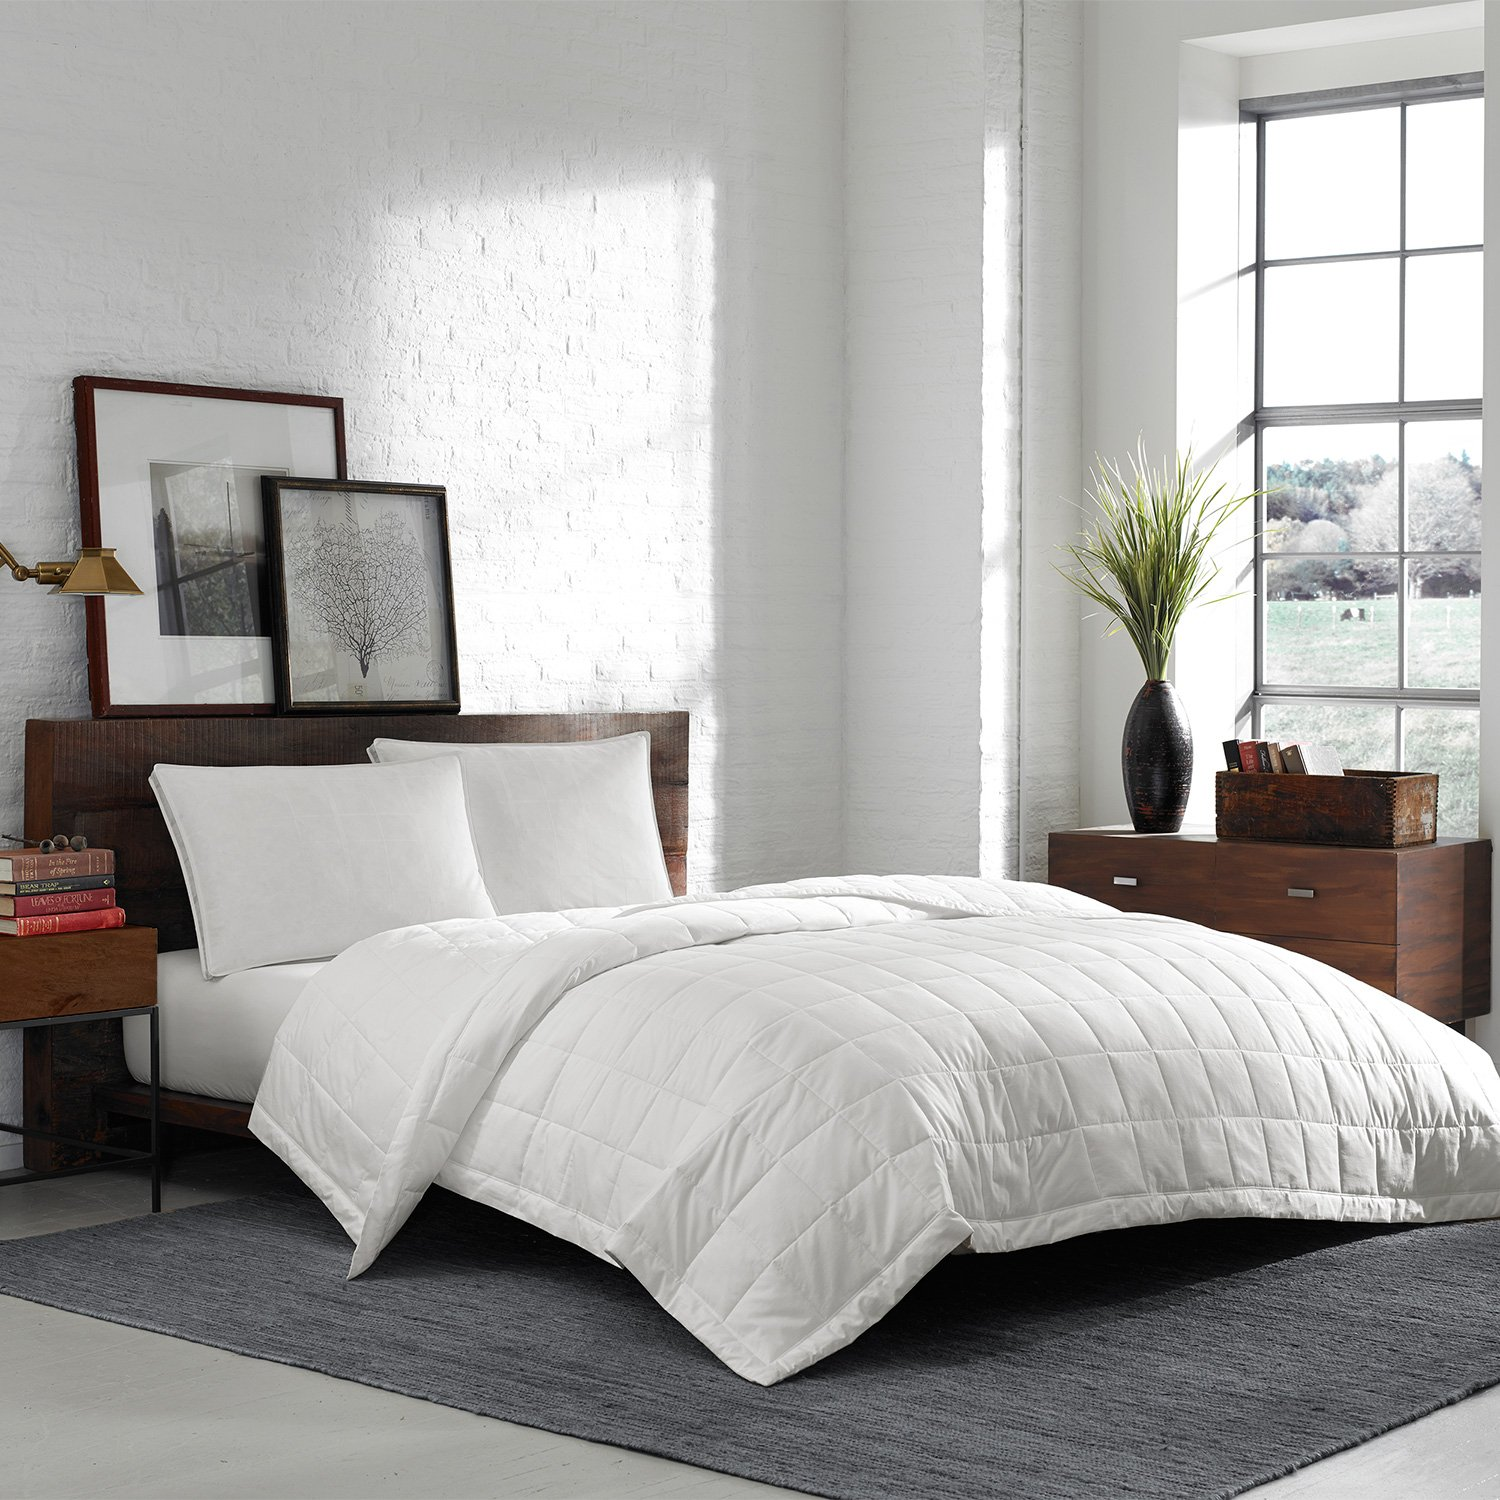 items jpg eddie rb lifestyles double dsc ebth bauer bedding bed ixlib by and lane